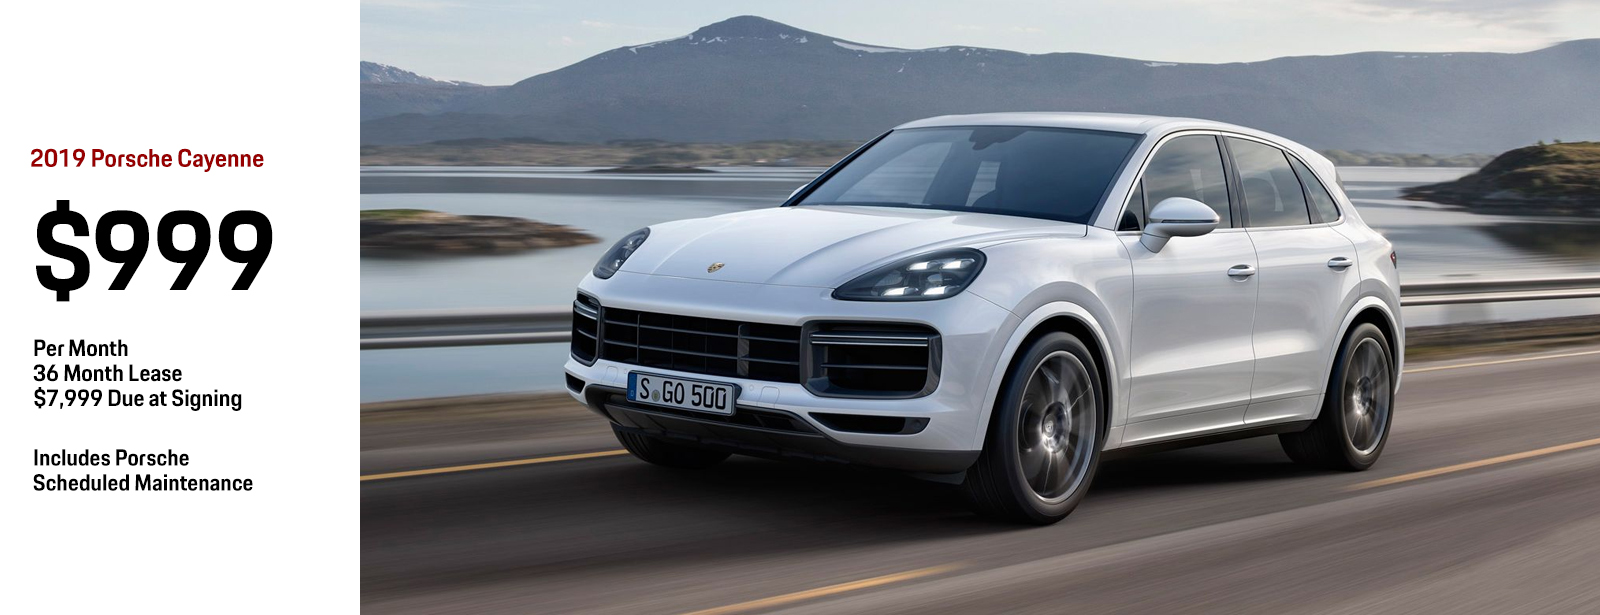 2019 Porsche Cayenne Low Payment Lease Special in Chandler, AZ